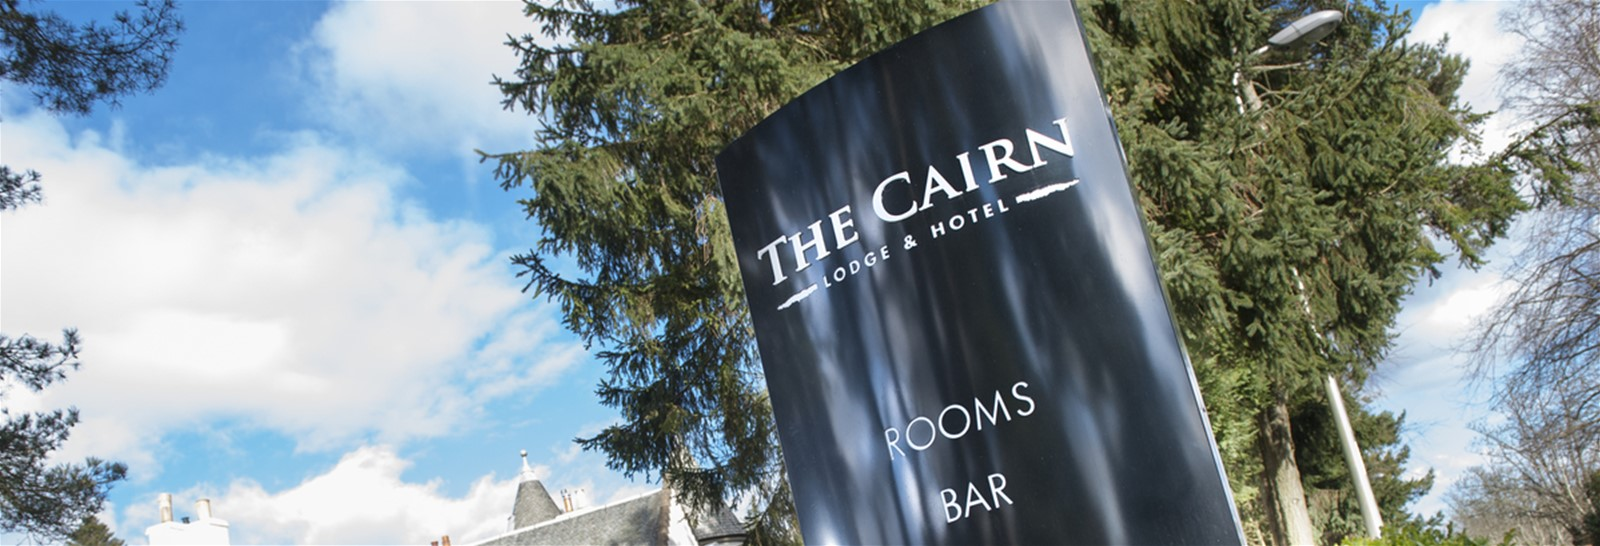 Spring signage trend - simple lettering on a monolith sign